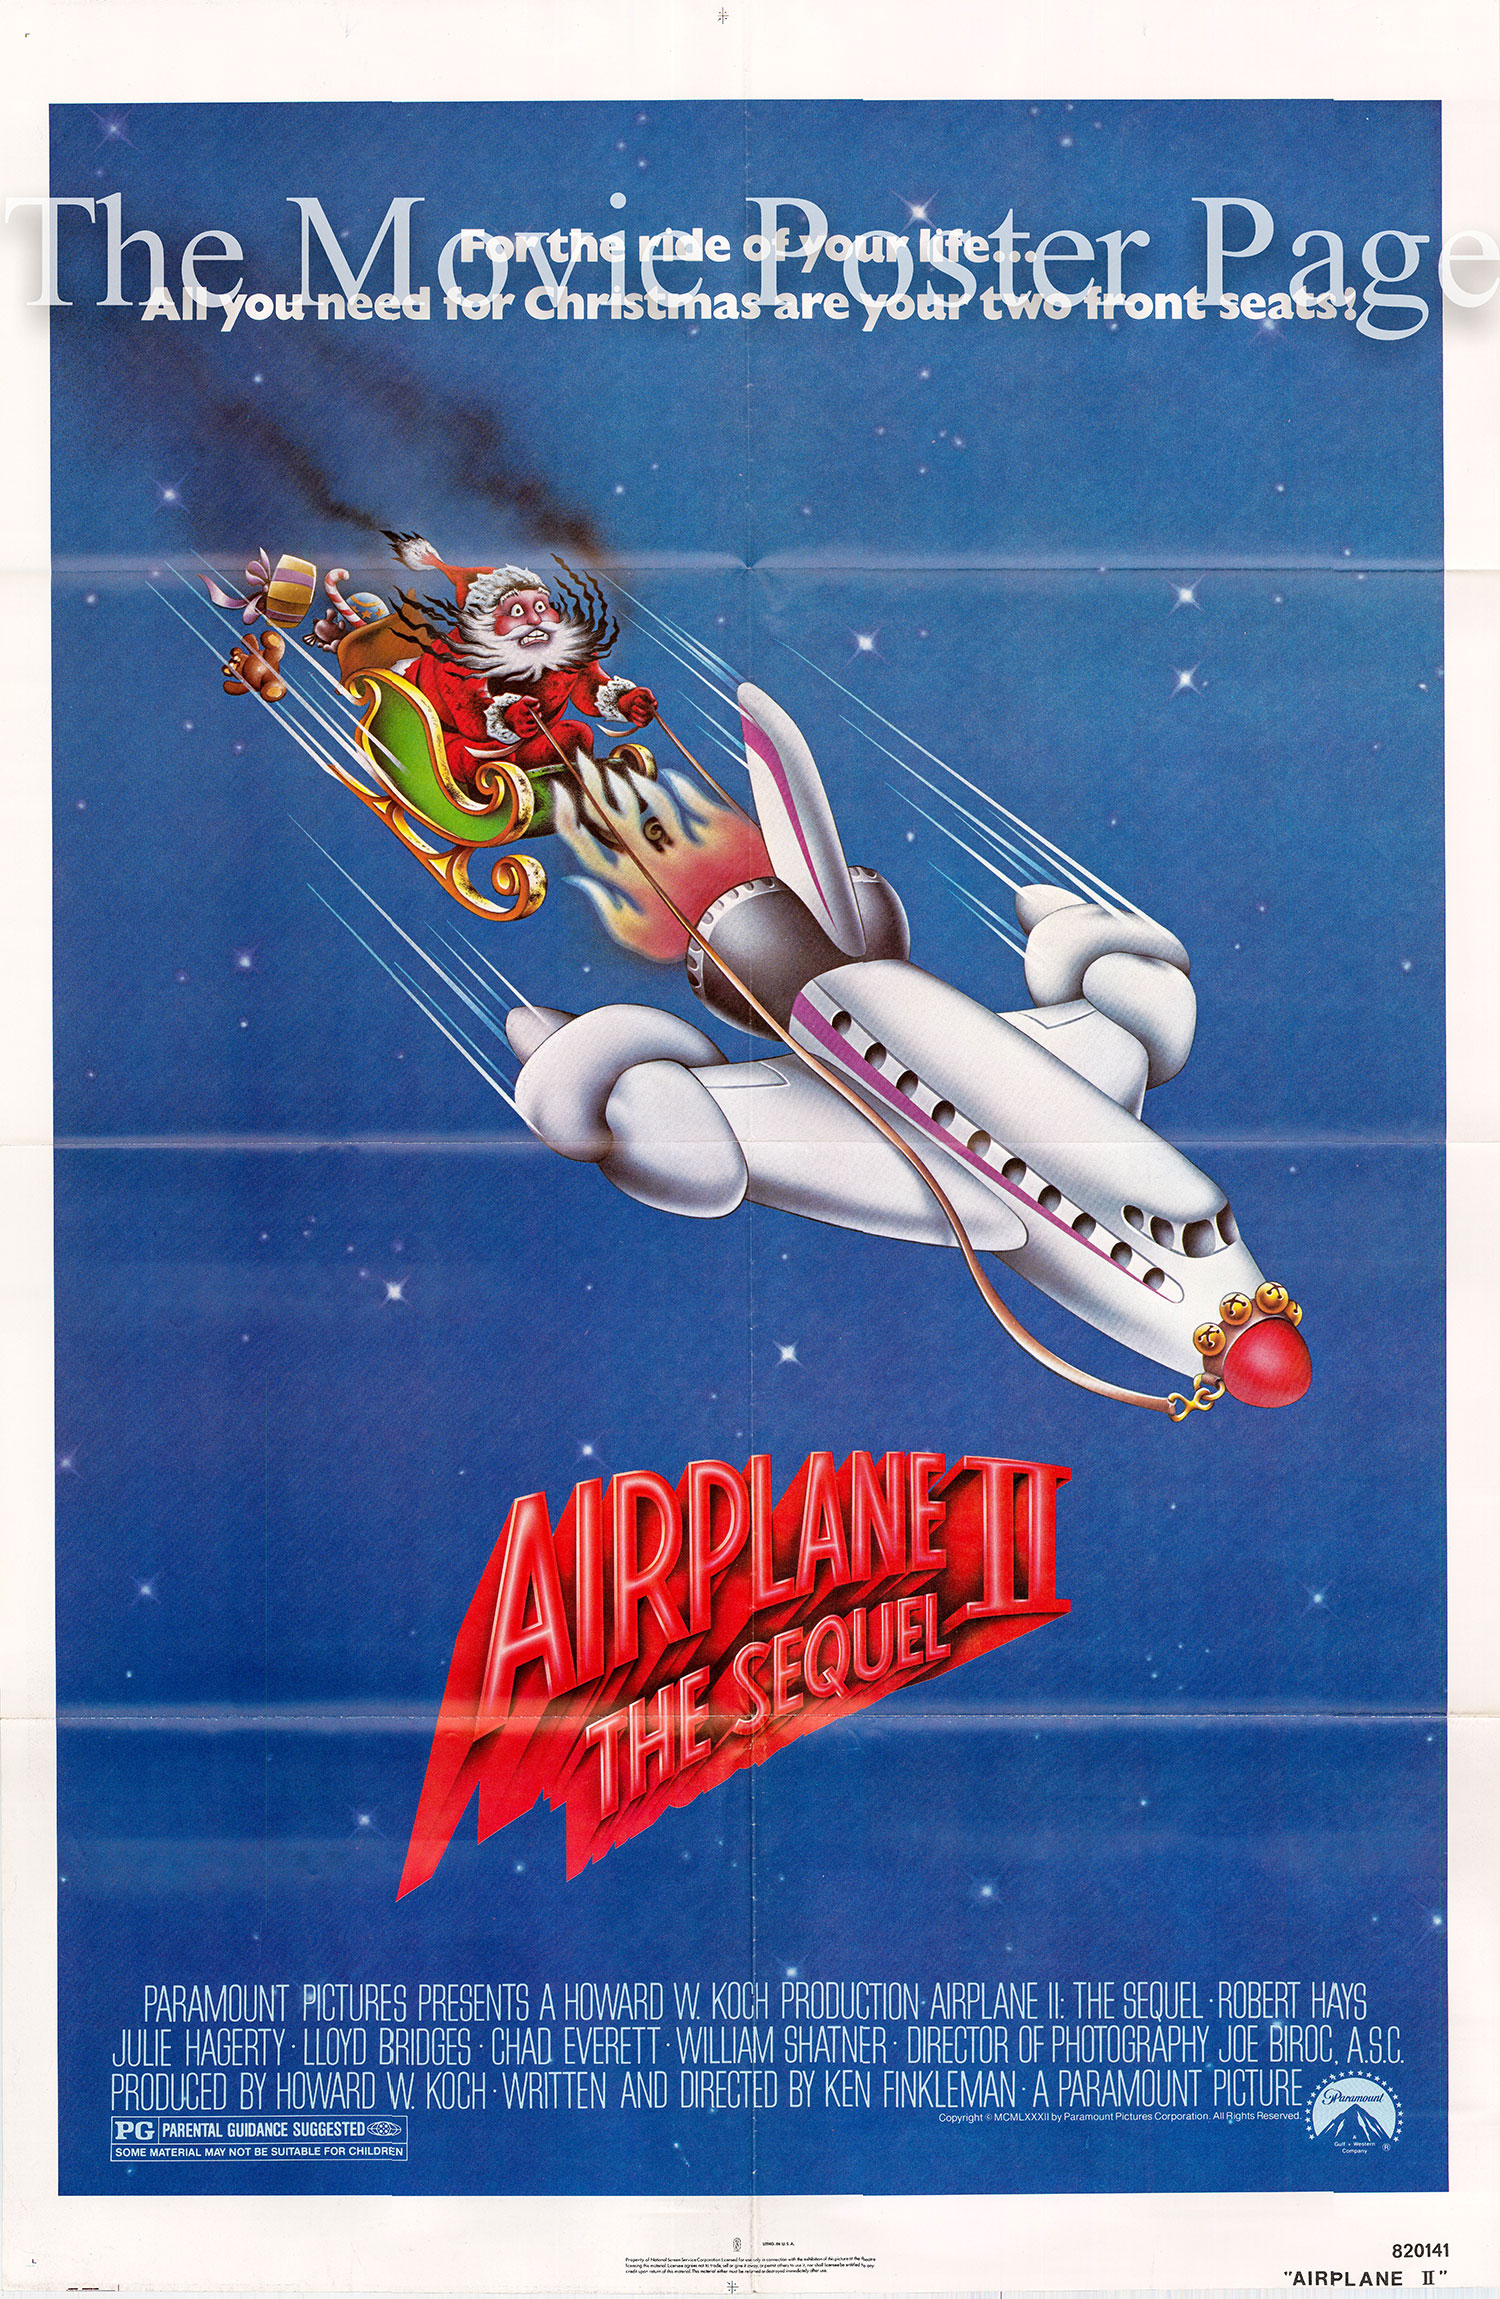 Pictured is a US one-sheet promotional poster for the 1982 Ken Finkleman film Airplane II: The Sequel, starring Robert Hays.